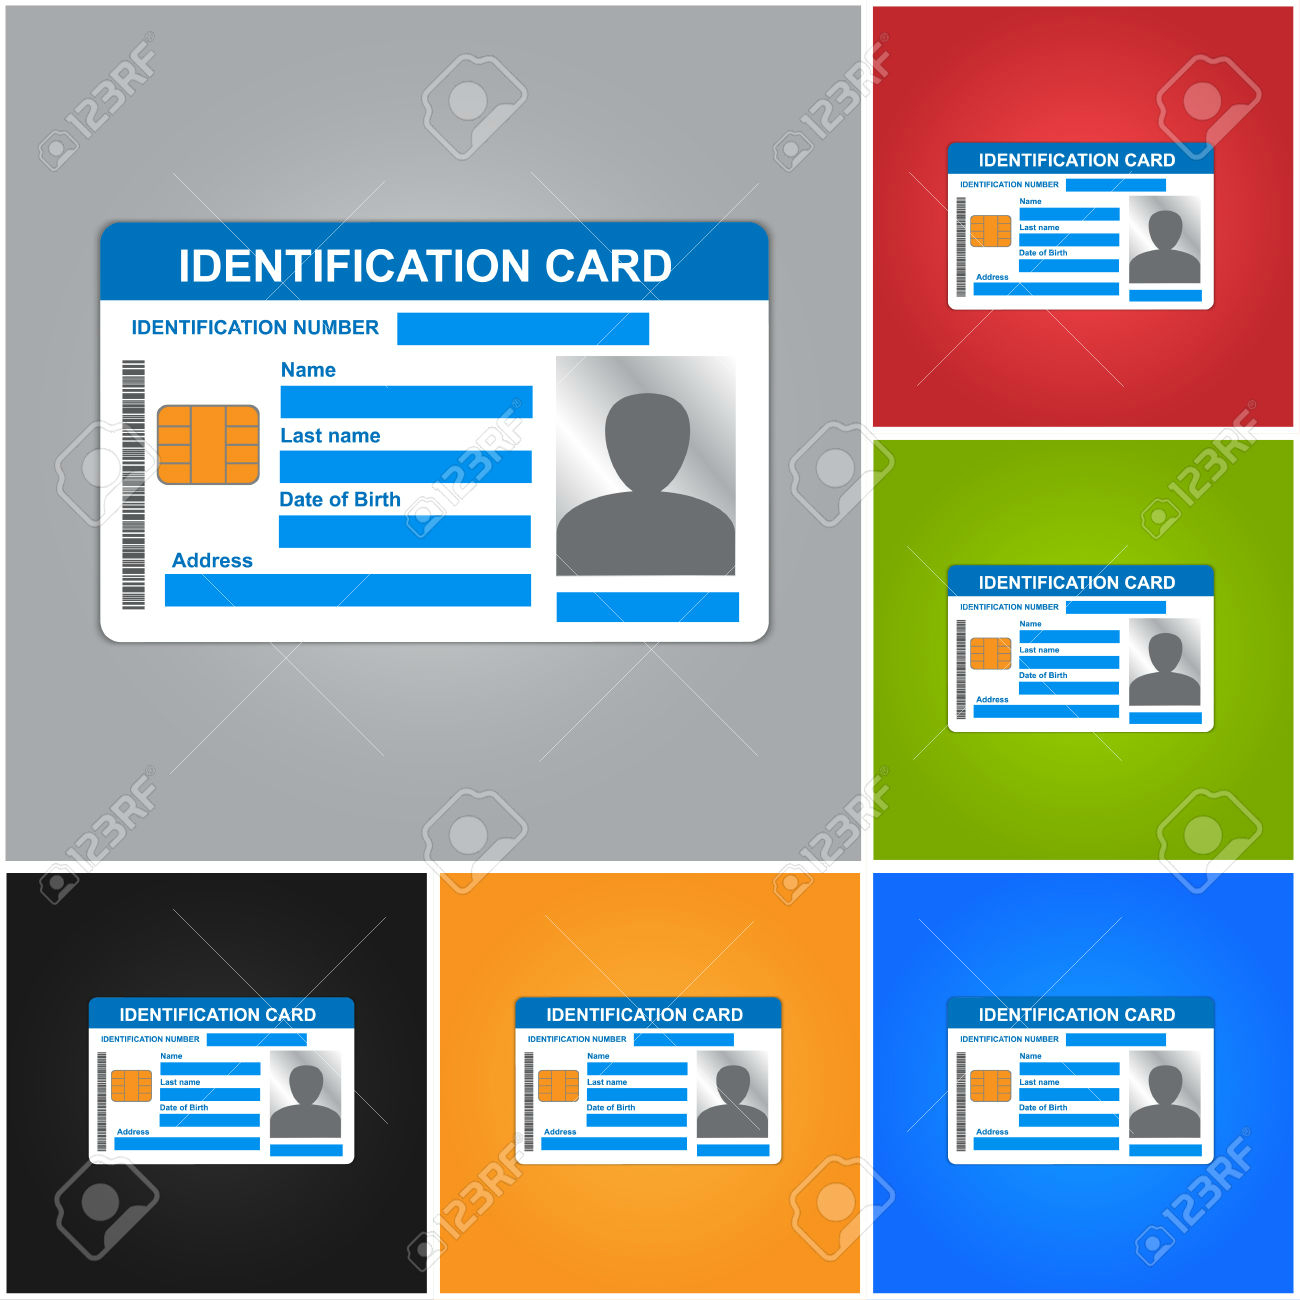 11+ Iconic Student Card Templates - Ai, Psd, Word   Free Intended For Isic Card Template